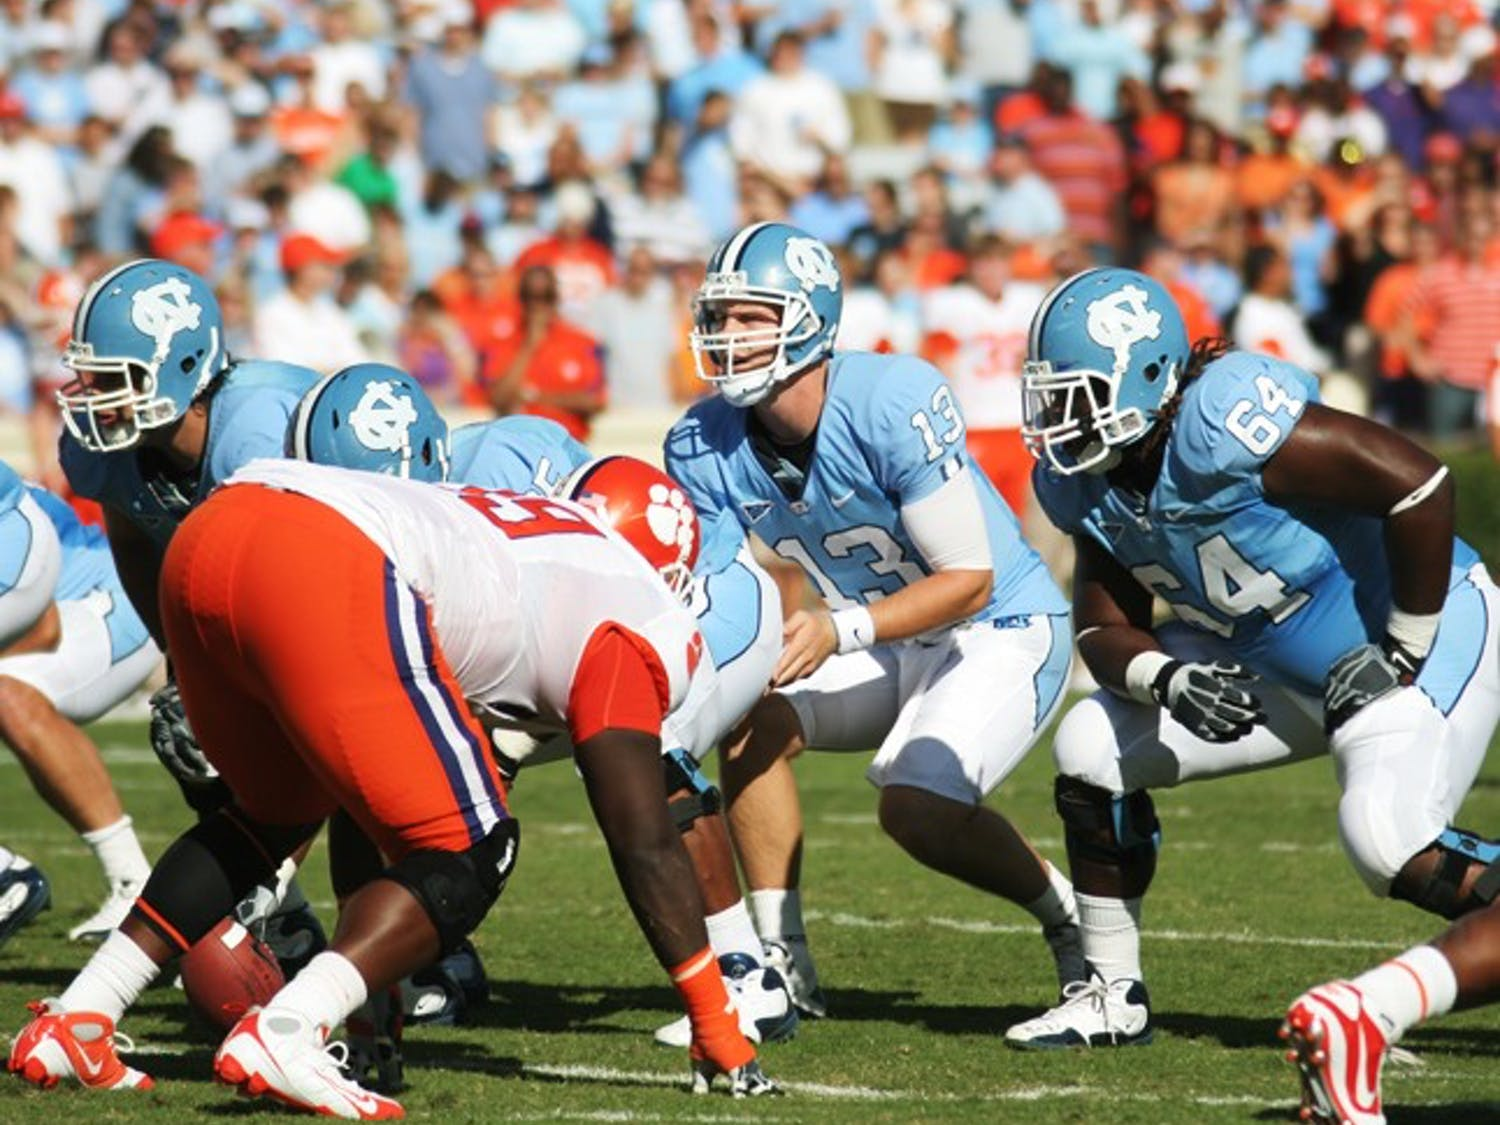 Quarterback T.J. Yates will rely heavily on his offensive line to protect him Saturday from a Miami defense that averages 3.3 sacks a game.